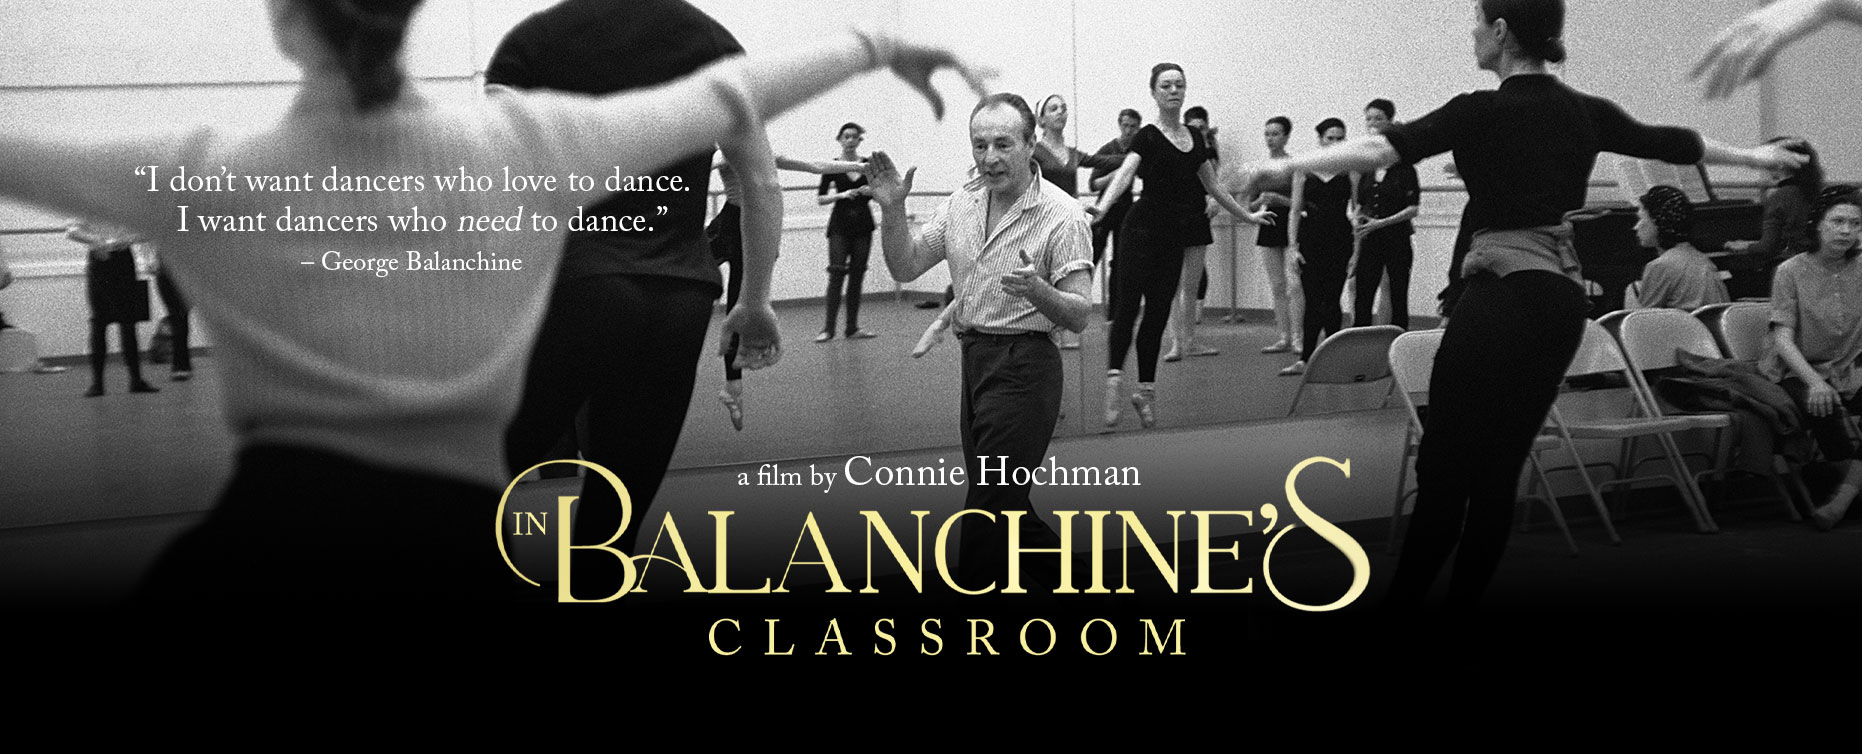 IN BALANCHINE'S CLASSROOM